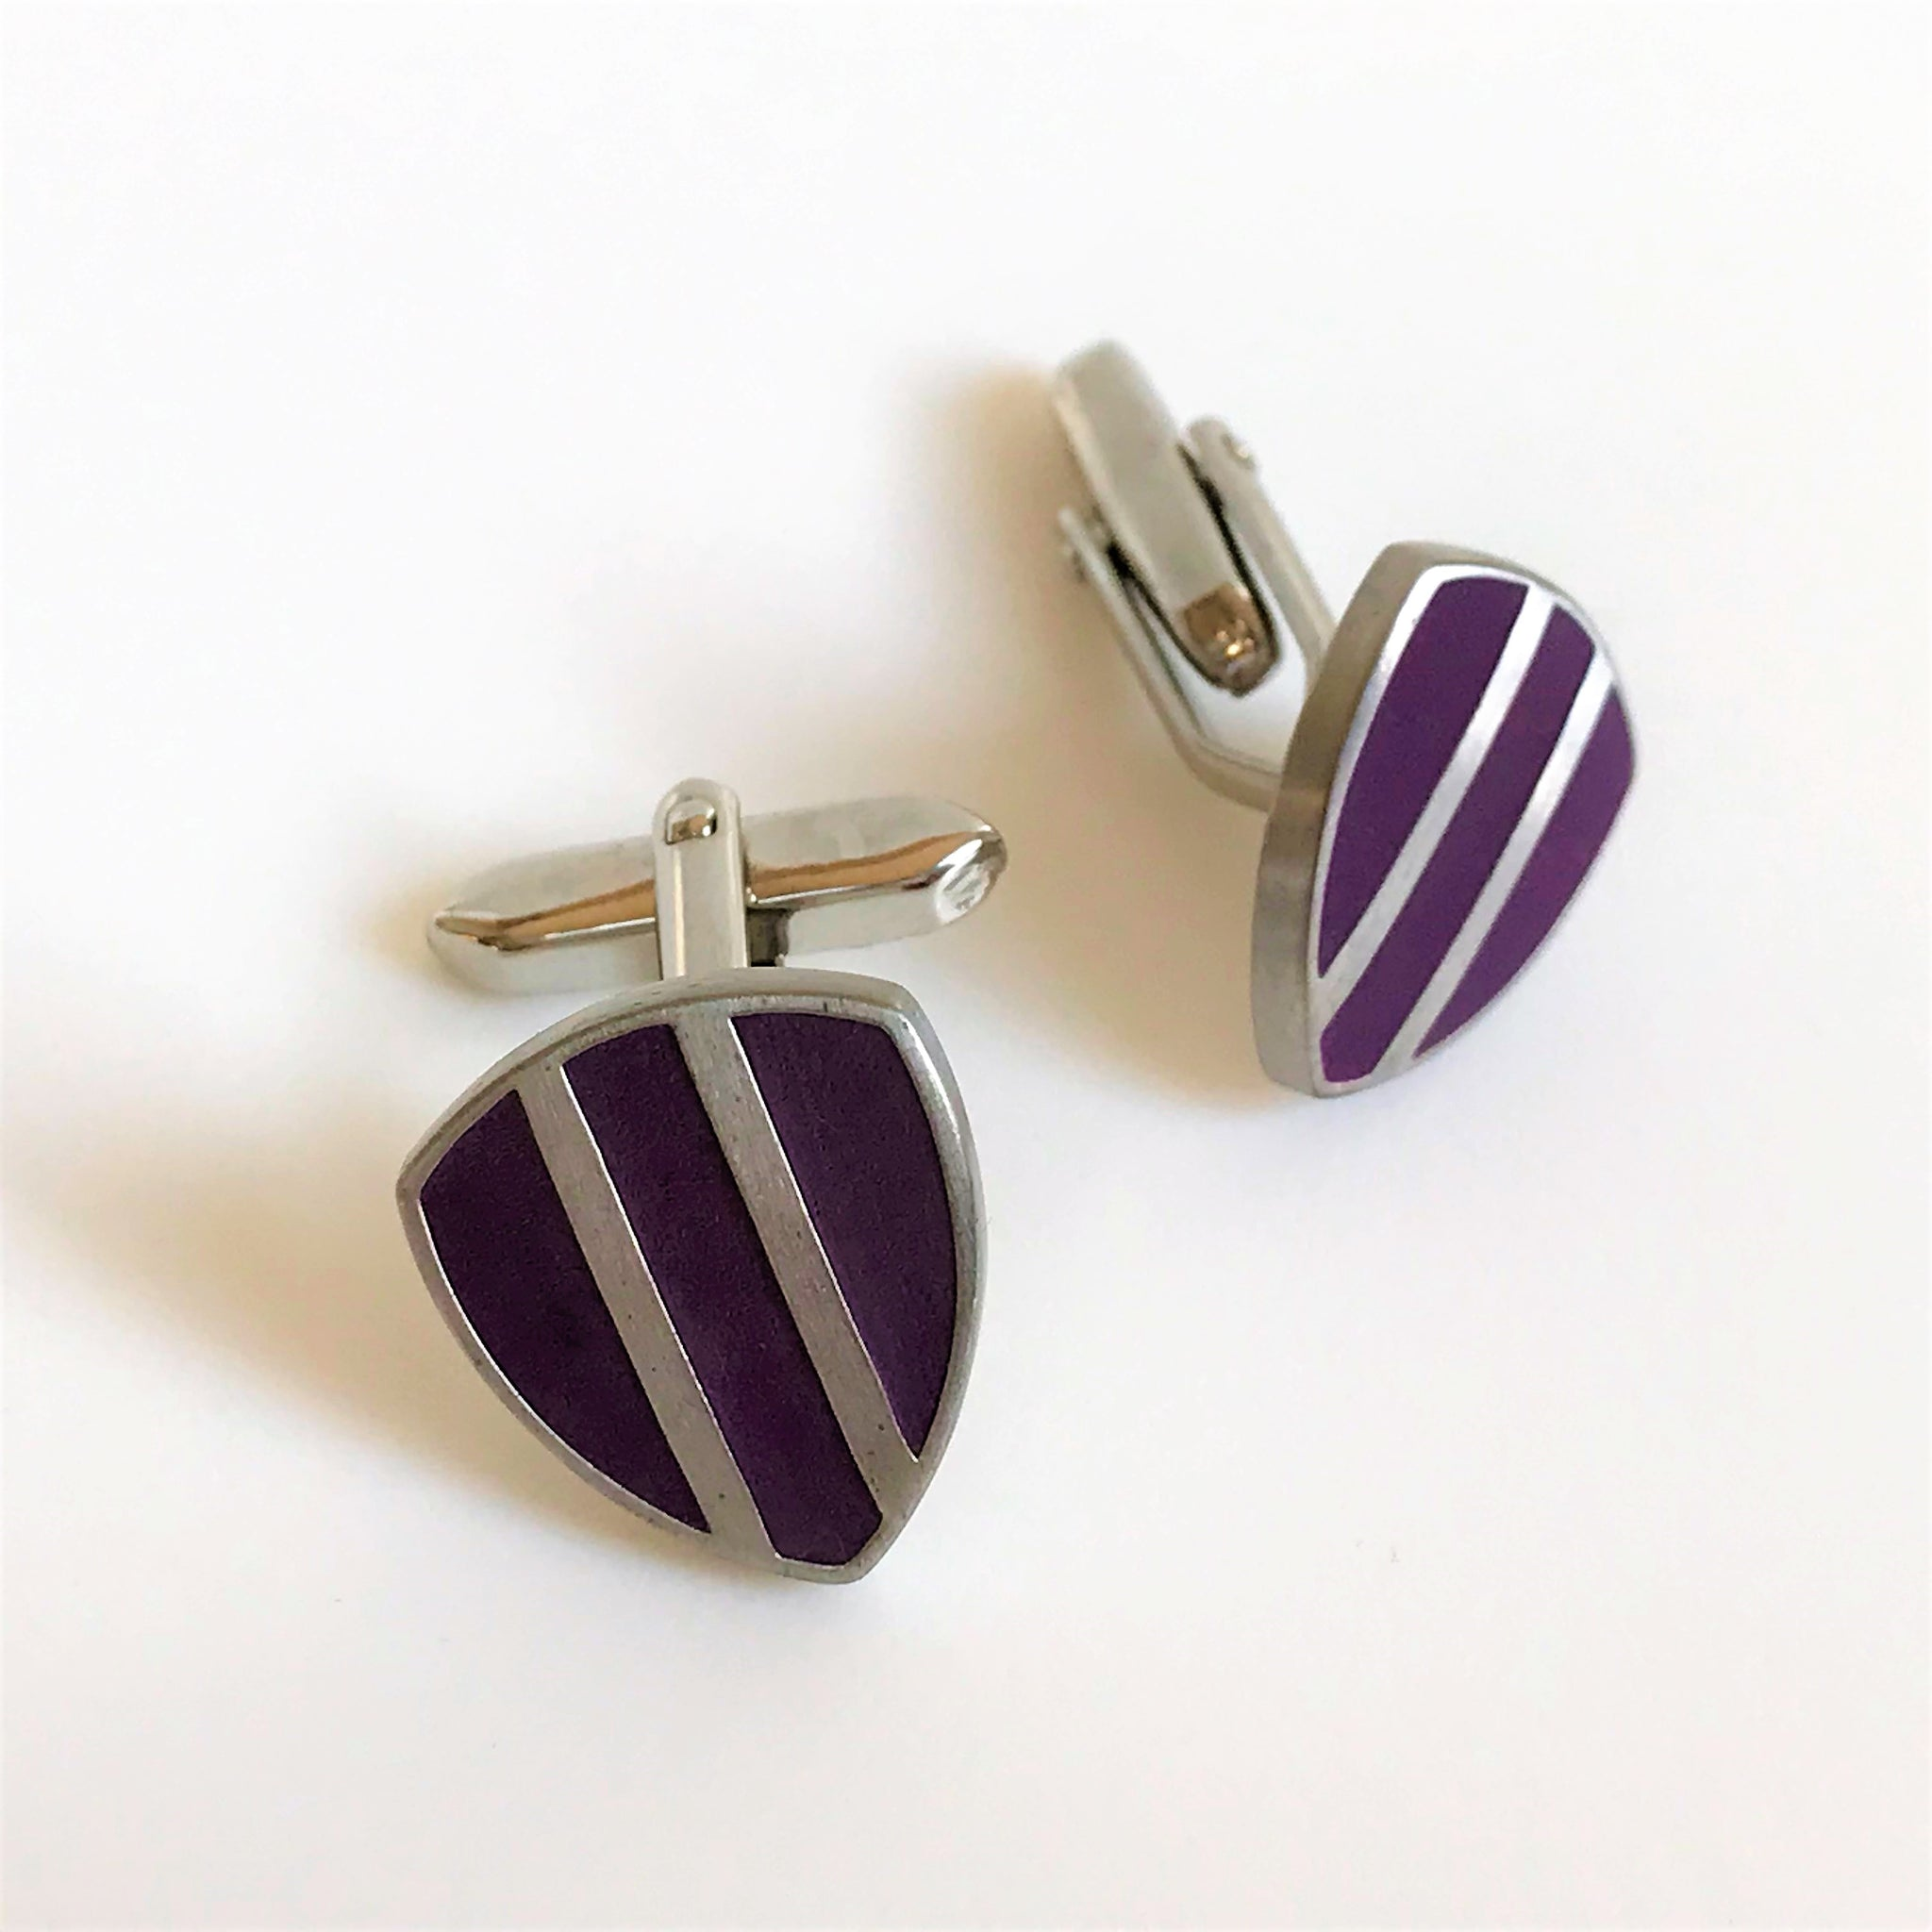 Stainless Steel Cufflinks